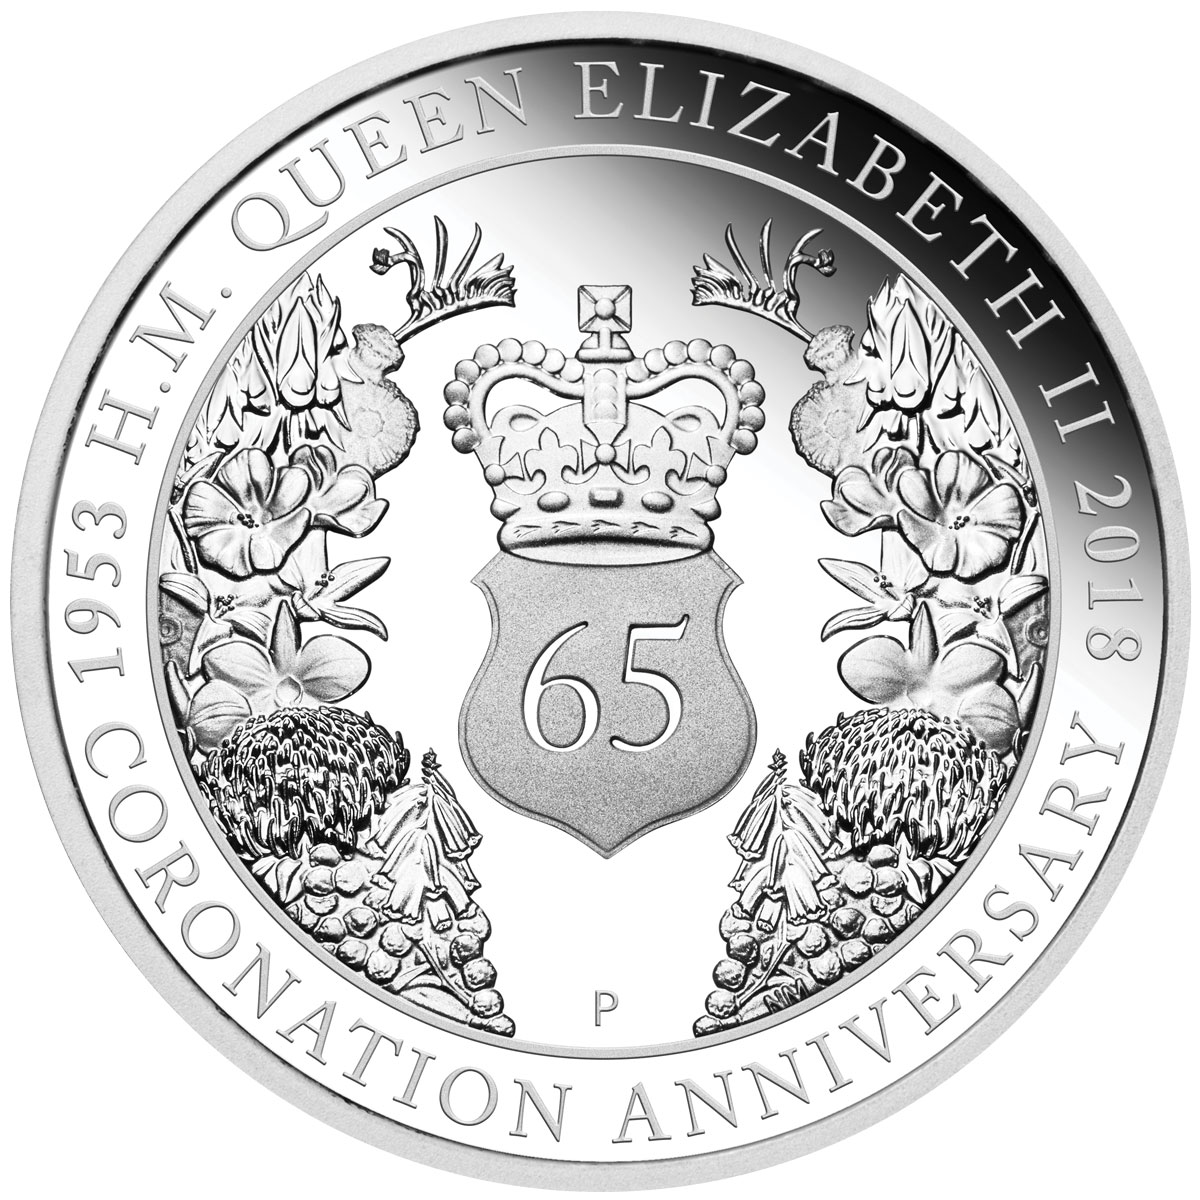 2018-P Australia Queen Elizabeth II Sapphire Coronation 1 oz Silver Proof $1 Coin GEM Proof